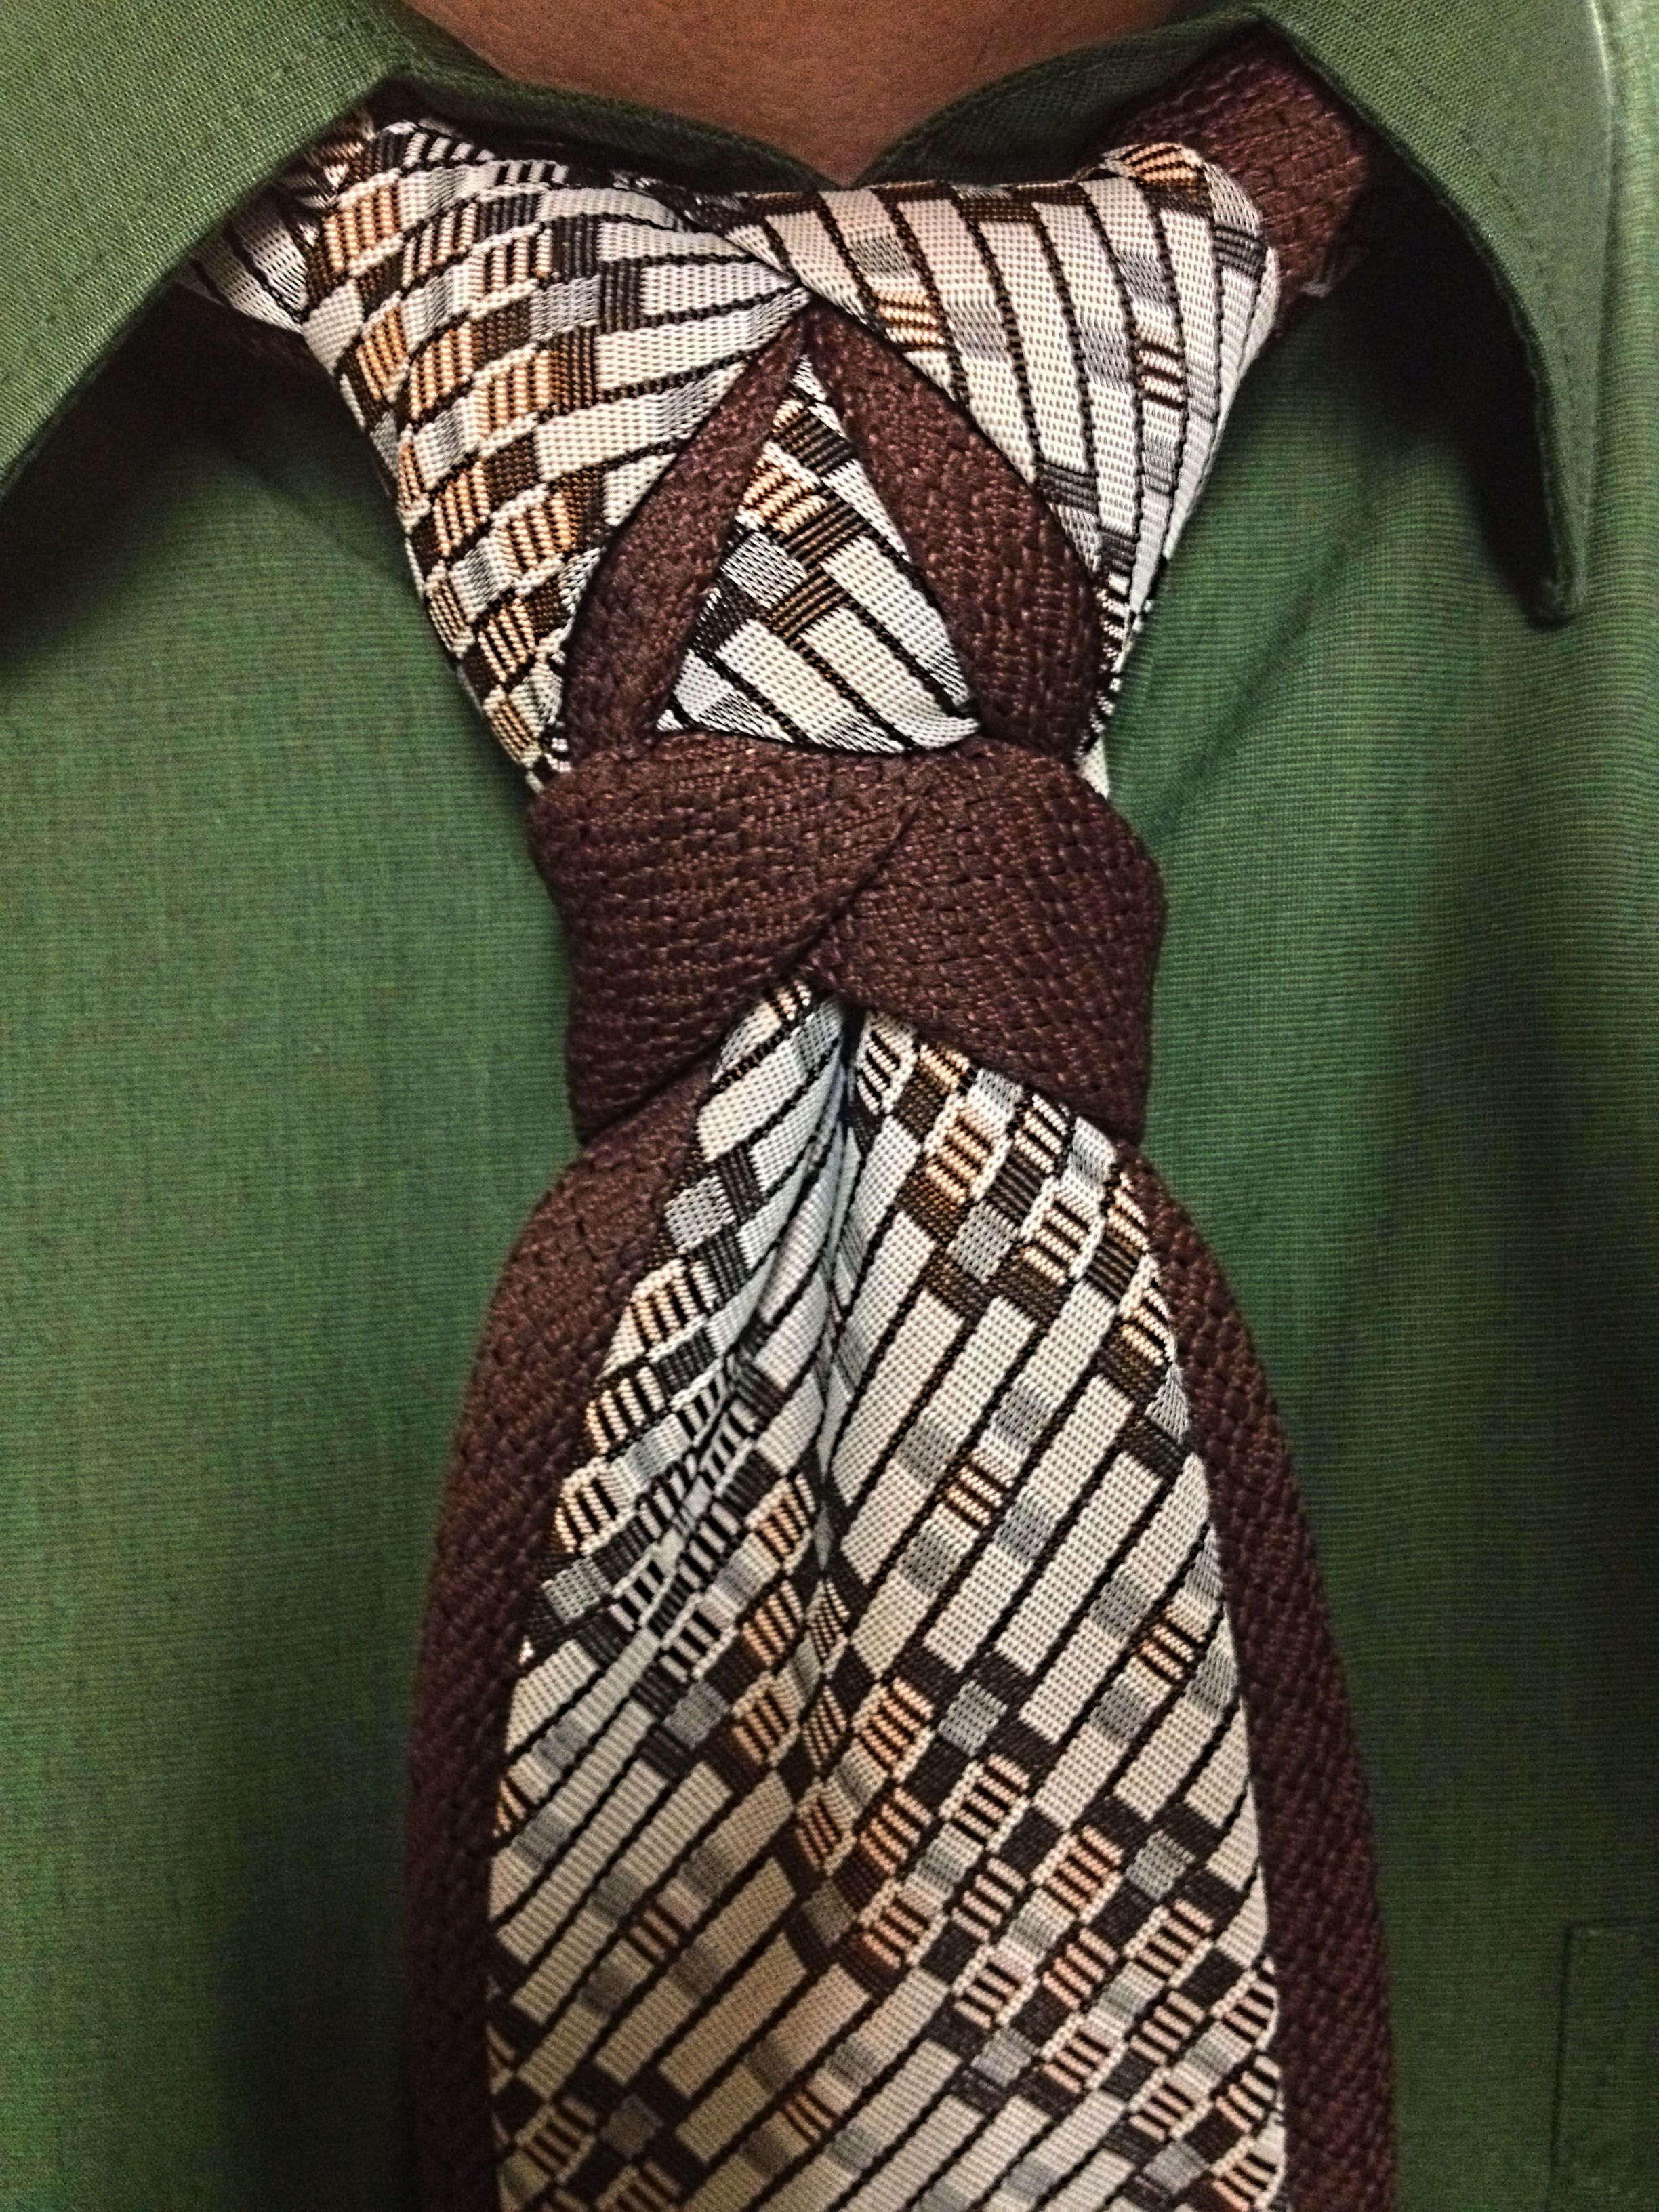 Combining Some Ideas From More Than One Type Of Tie Knot Can Produce Windsor A And Ties On Pinterest Interesting Results